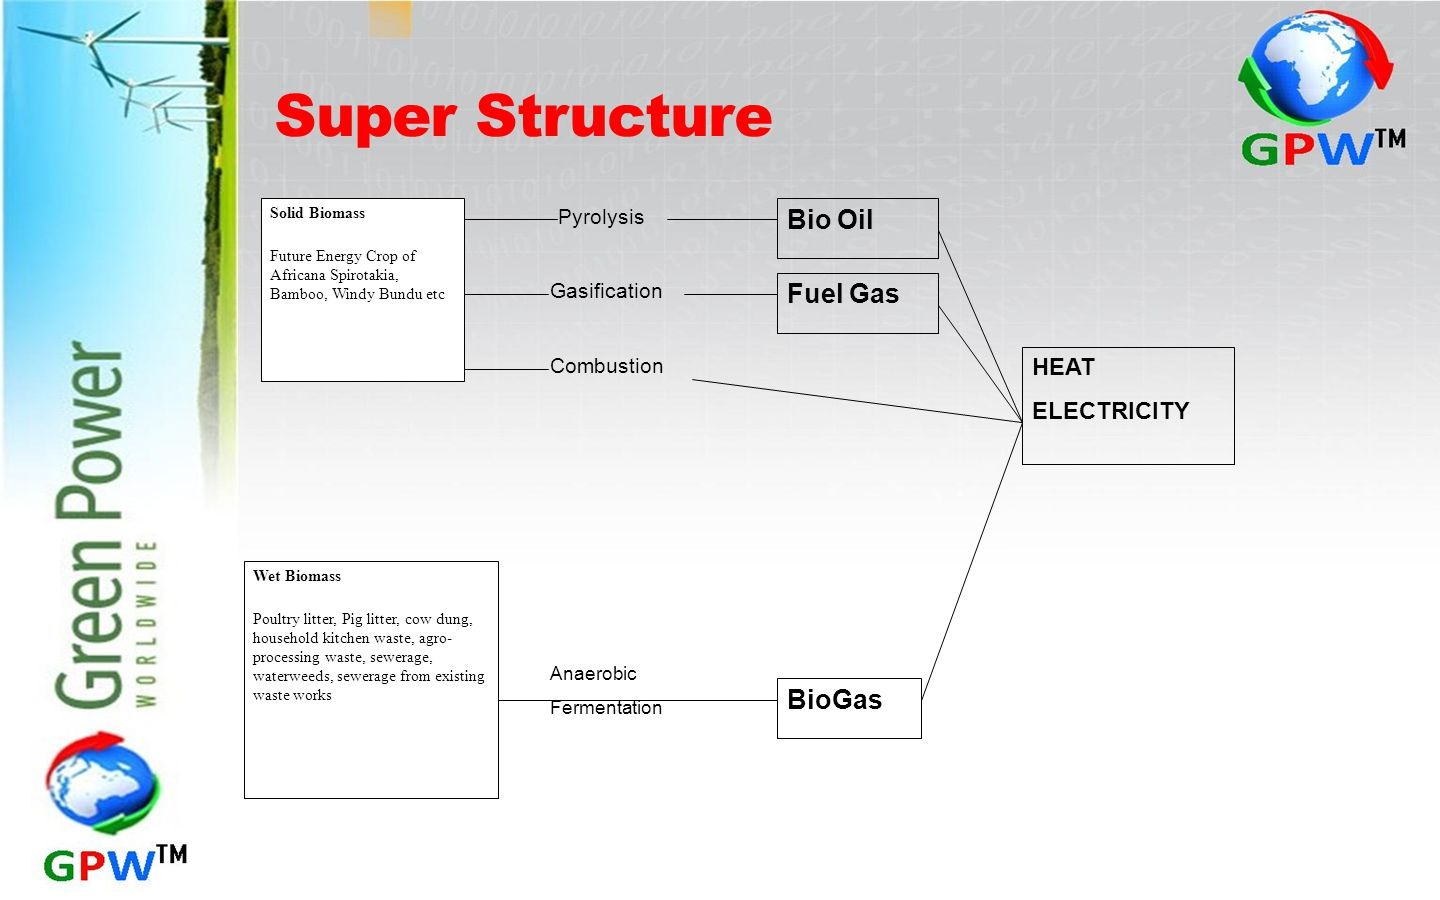 Super Structure Bio Oil Fuel Gas BioGas HEAT ELECTRICITY Pyrolysis